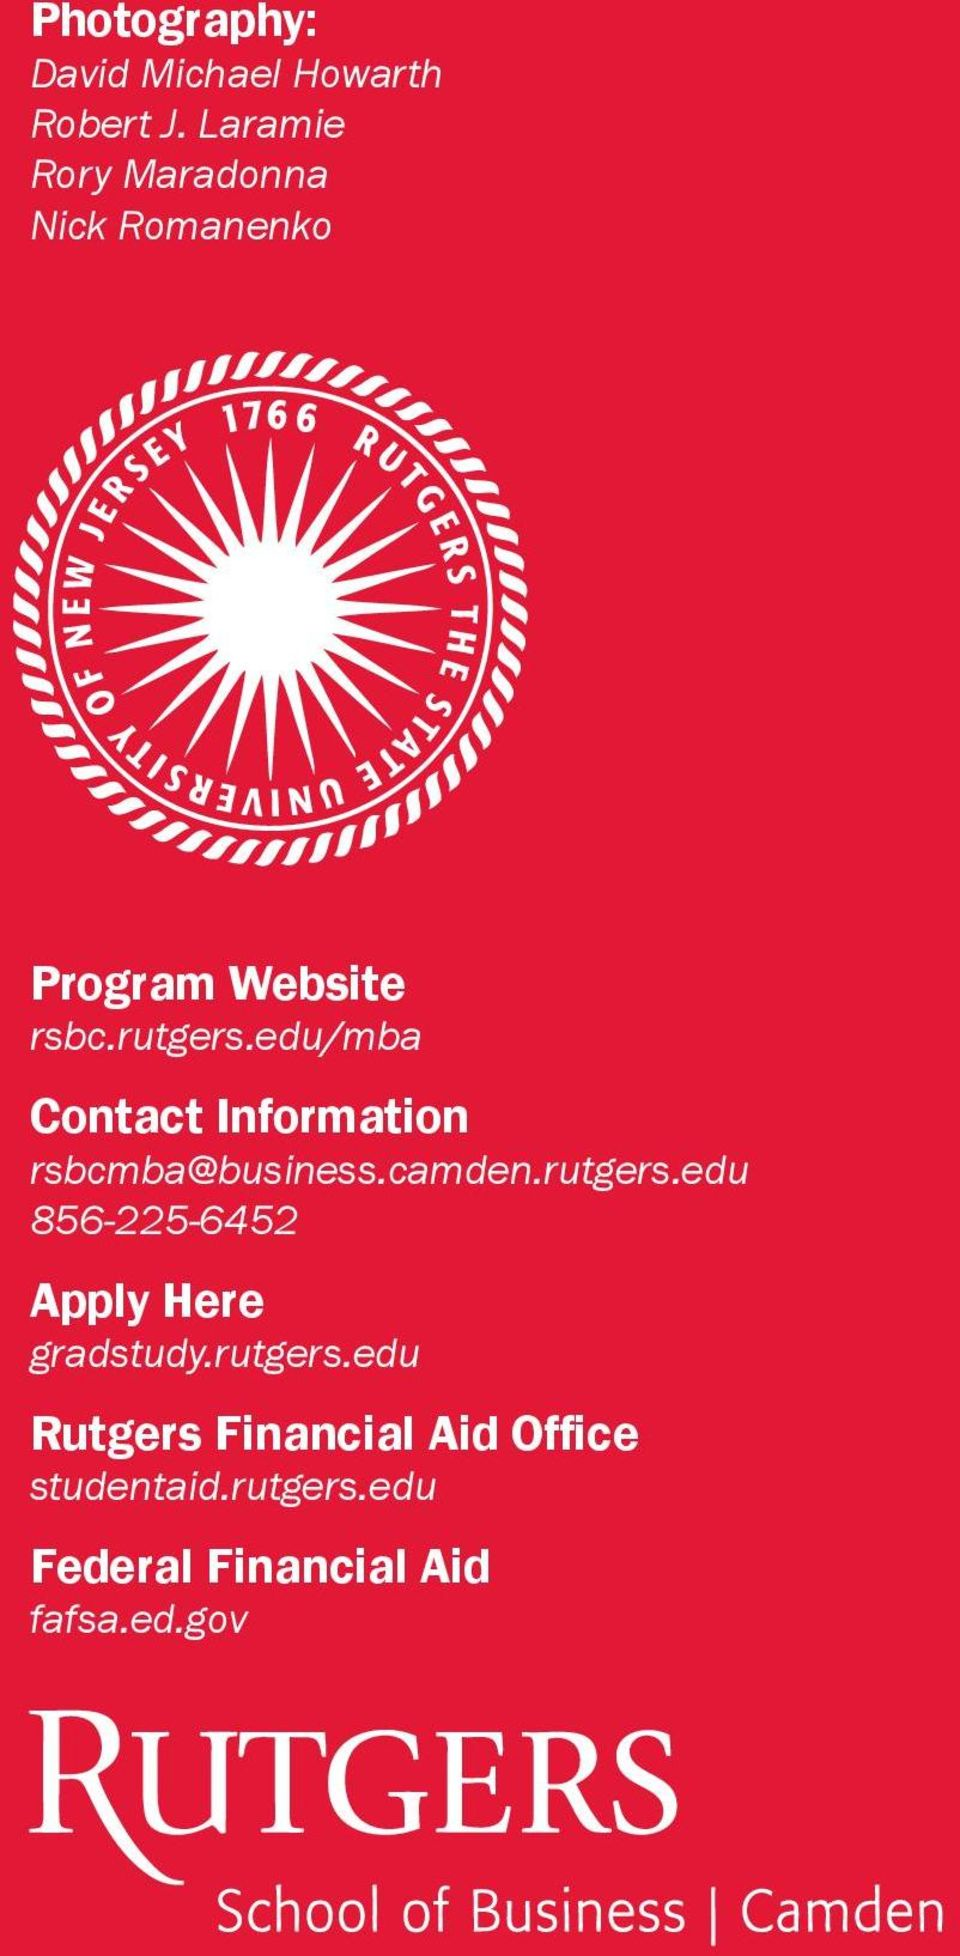 edu/mba Contact Information rsbcmba@business.camden.rutgers.